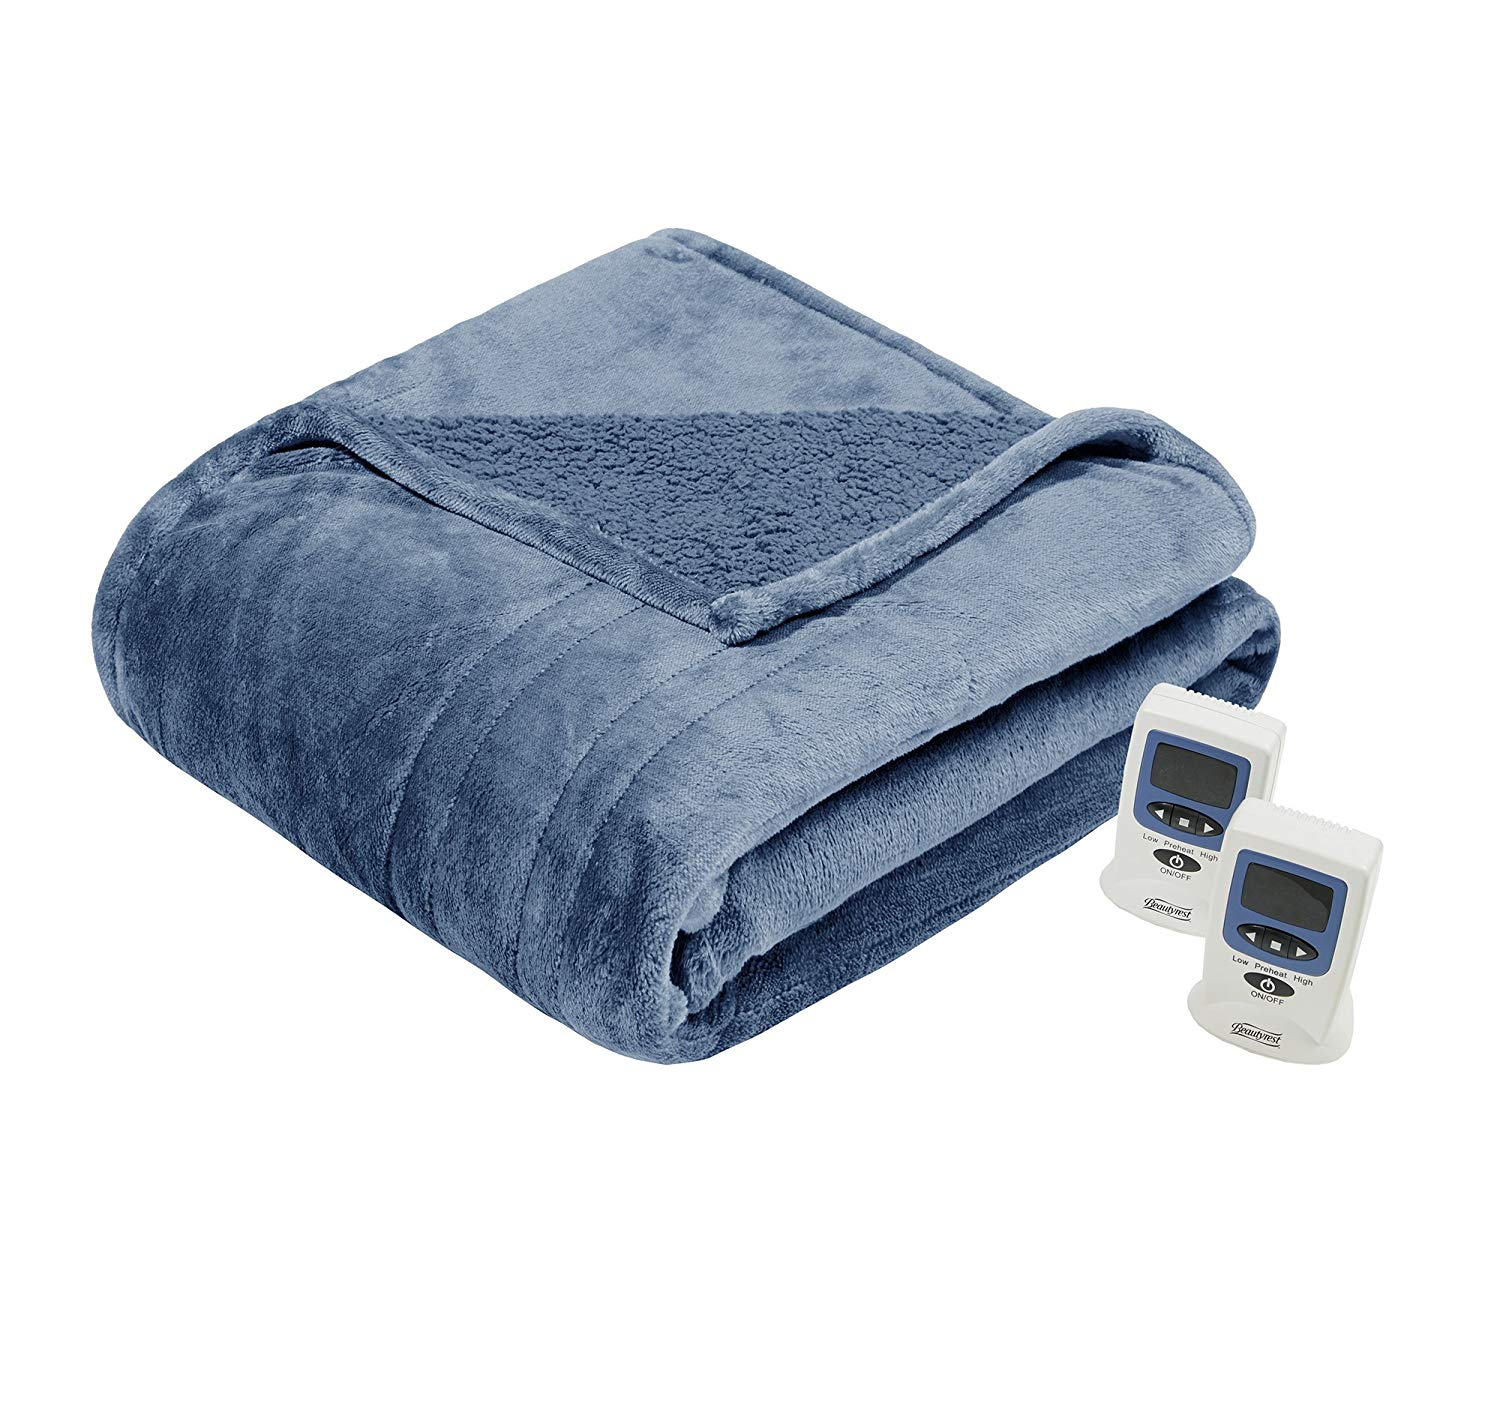 Beautyrest Best Electric Blanket Review by www.snoremagazine.com